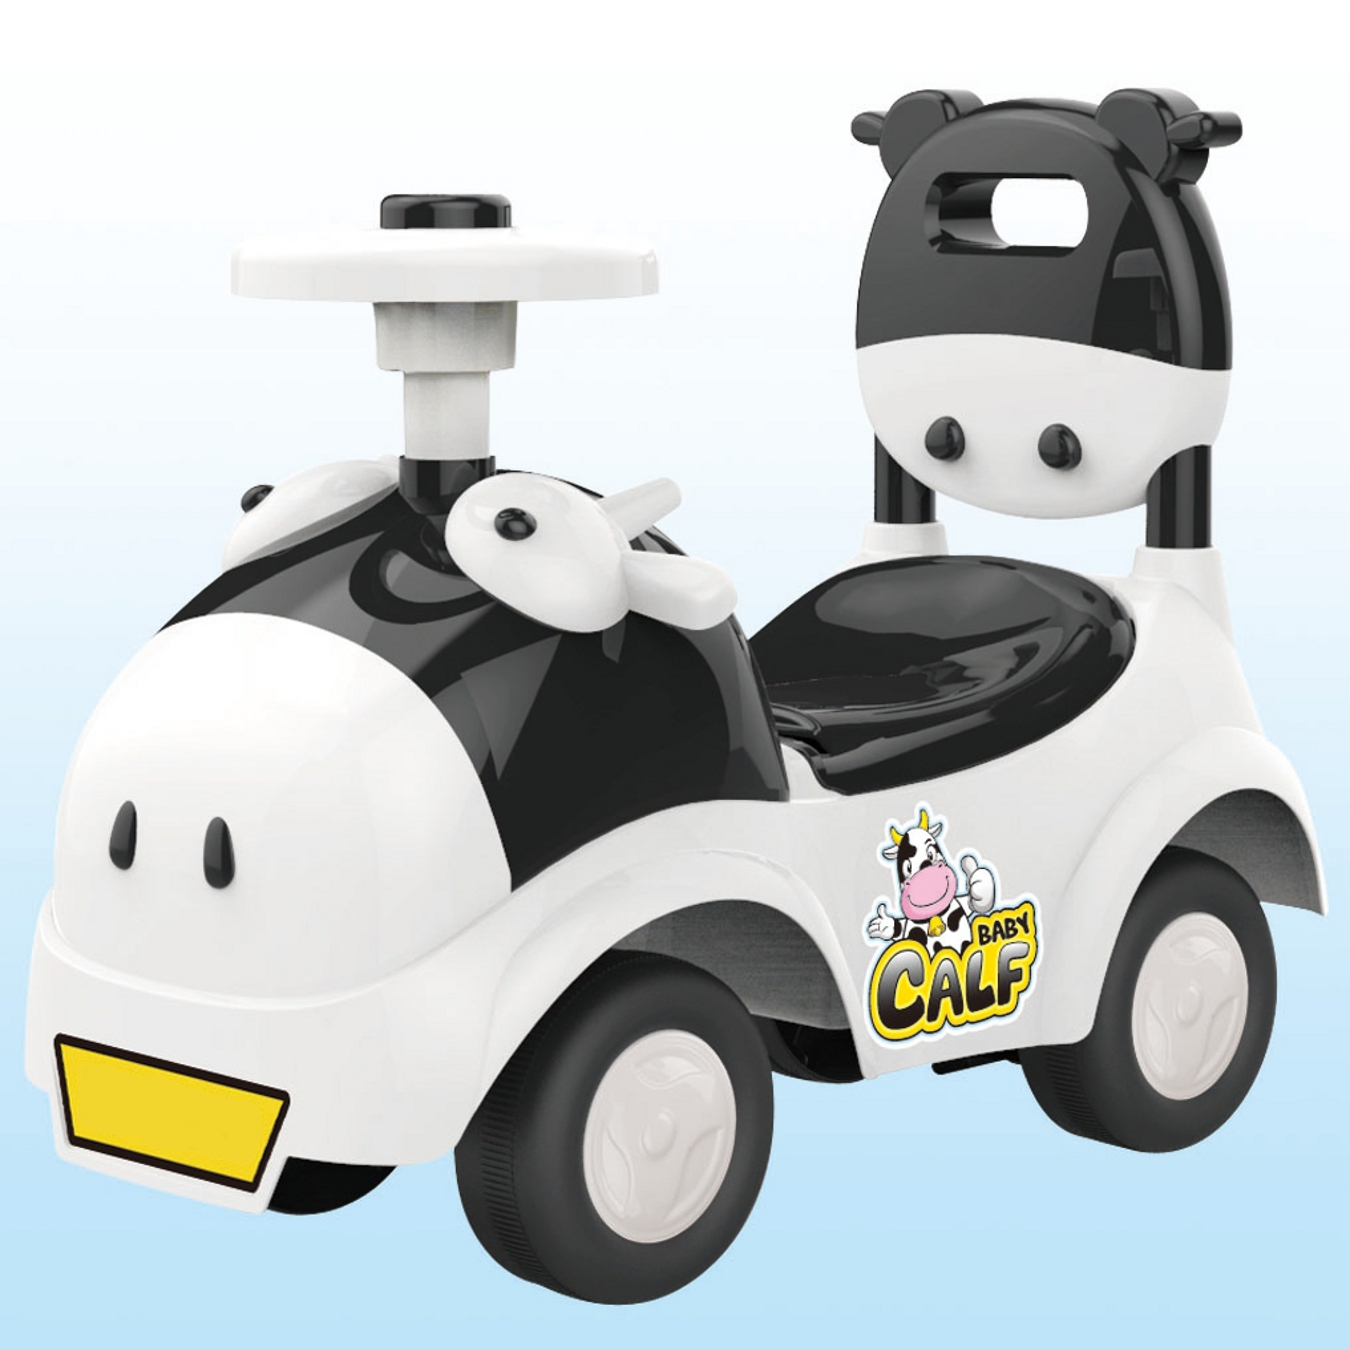 POCO DIVO Baby Calf 3-in-1 Walker Low-seat Ride On Toy Sliding Car Pushing Cart with Sound - Black/White